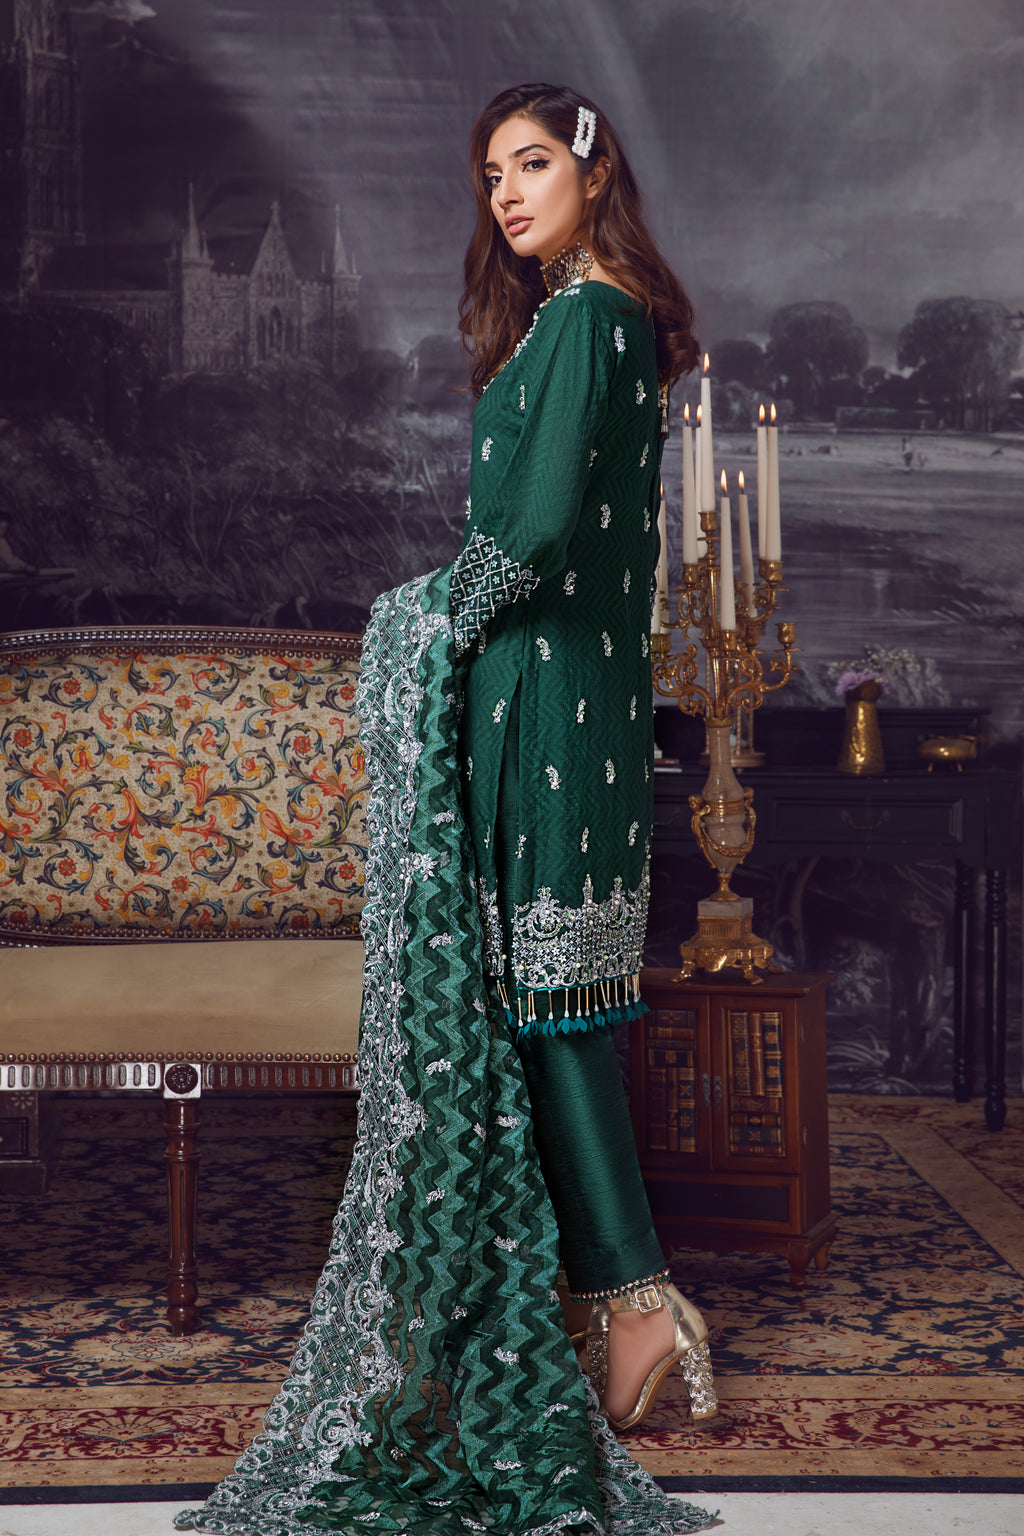 pakistani designer clothes online, Designer dresses for wedding, Womens Clothing Online